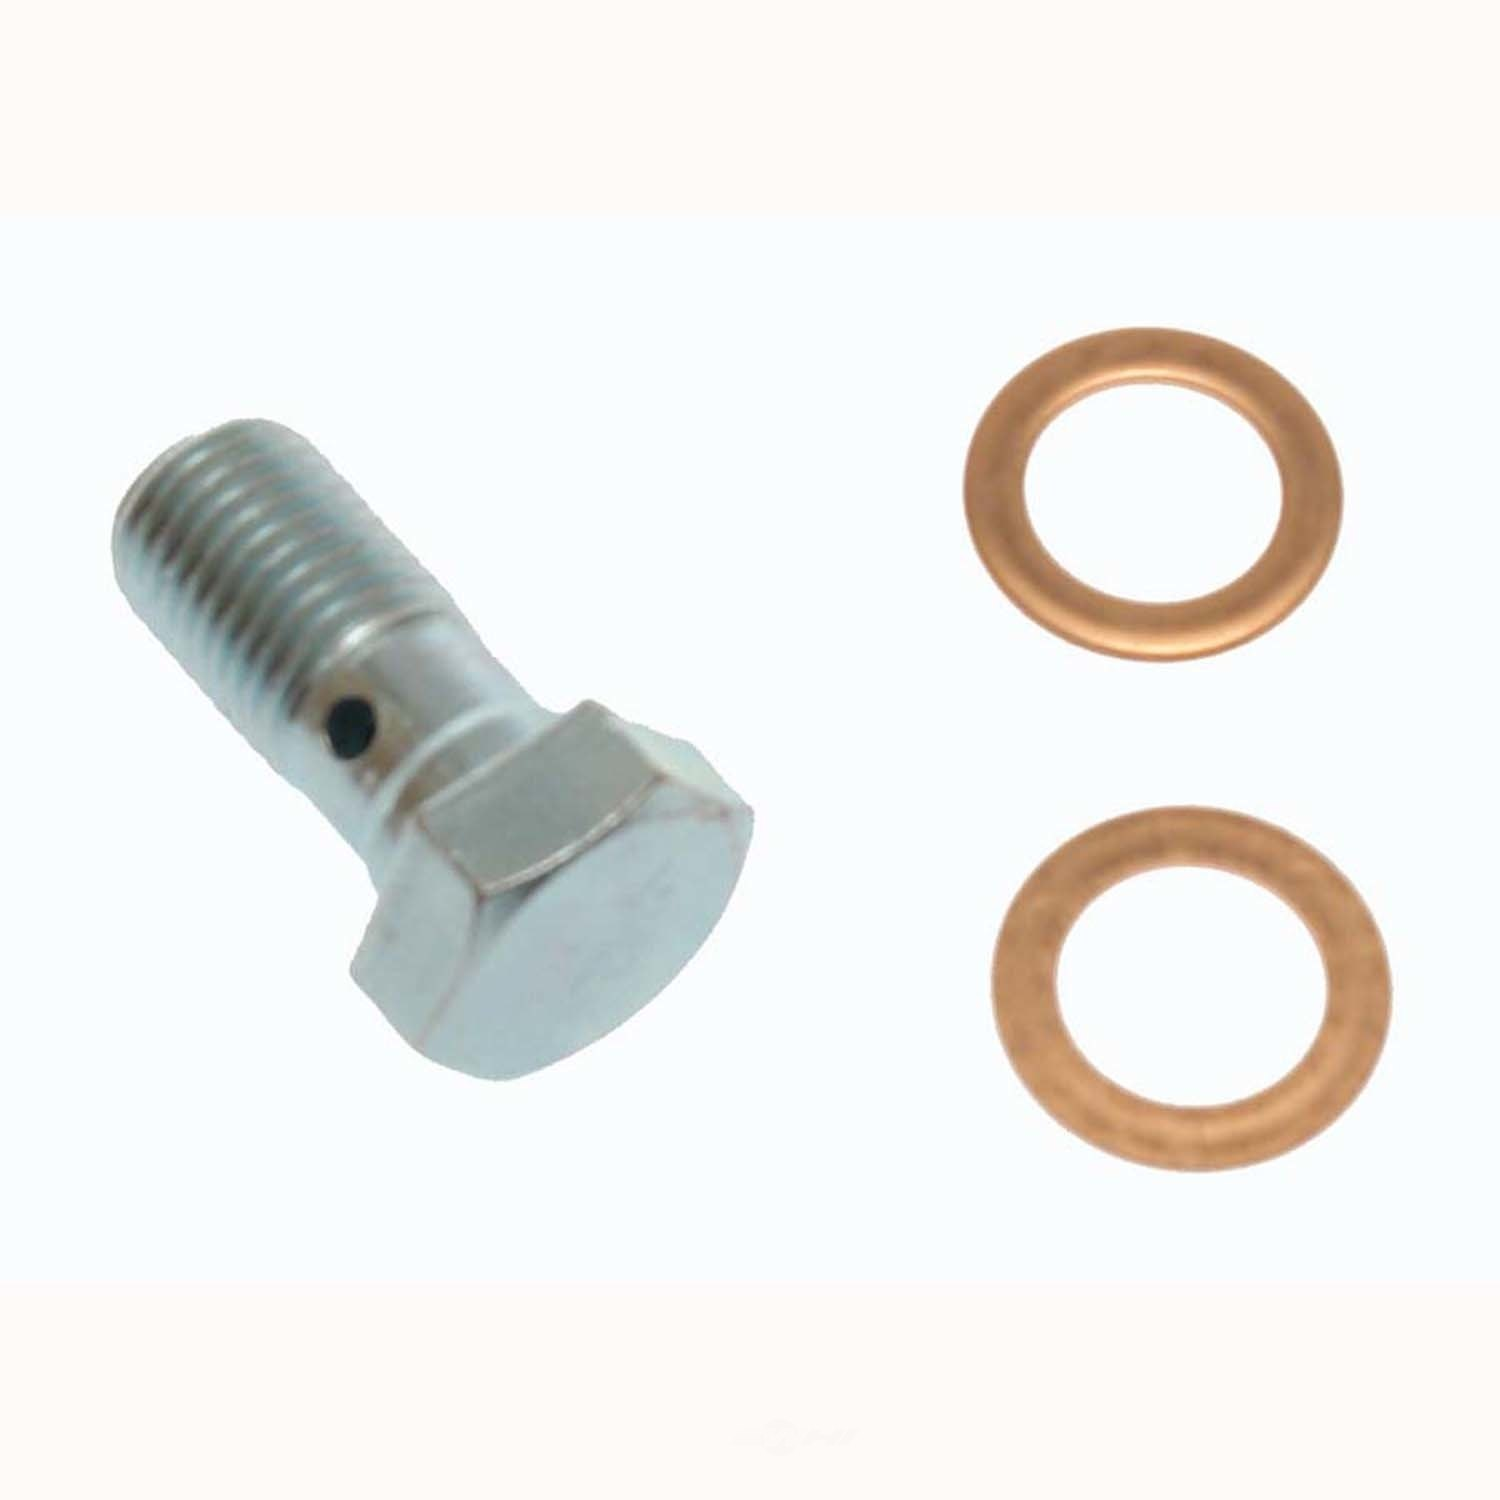 CARLSON QUALITY BRAKE PARTS - Brake Hydraulic Banjo Bolt - CRL H9474-2